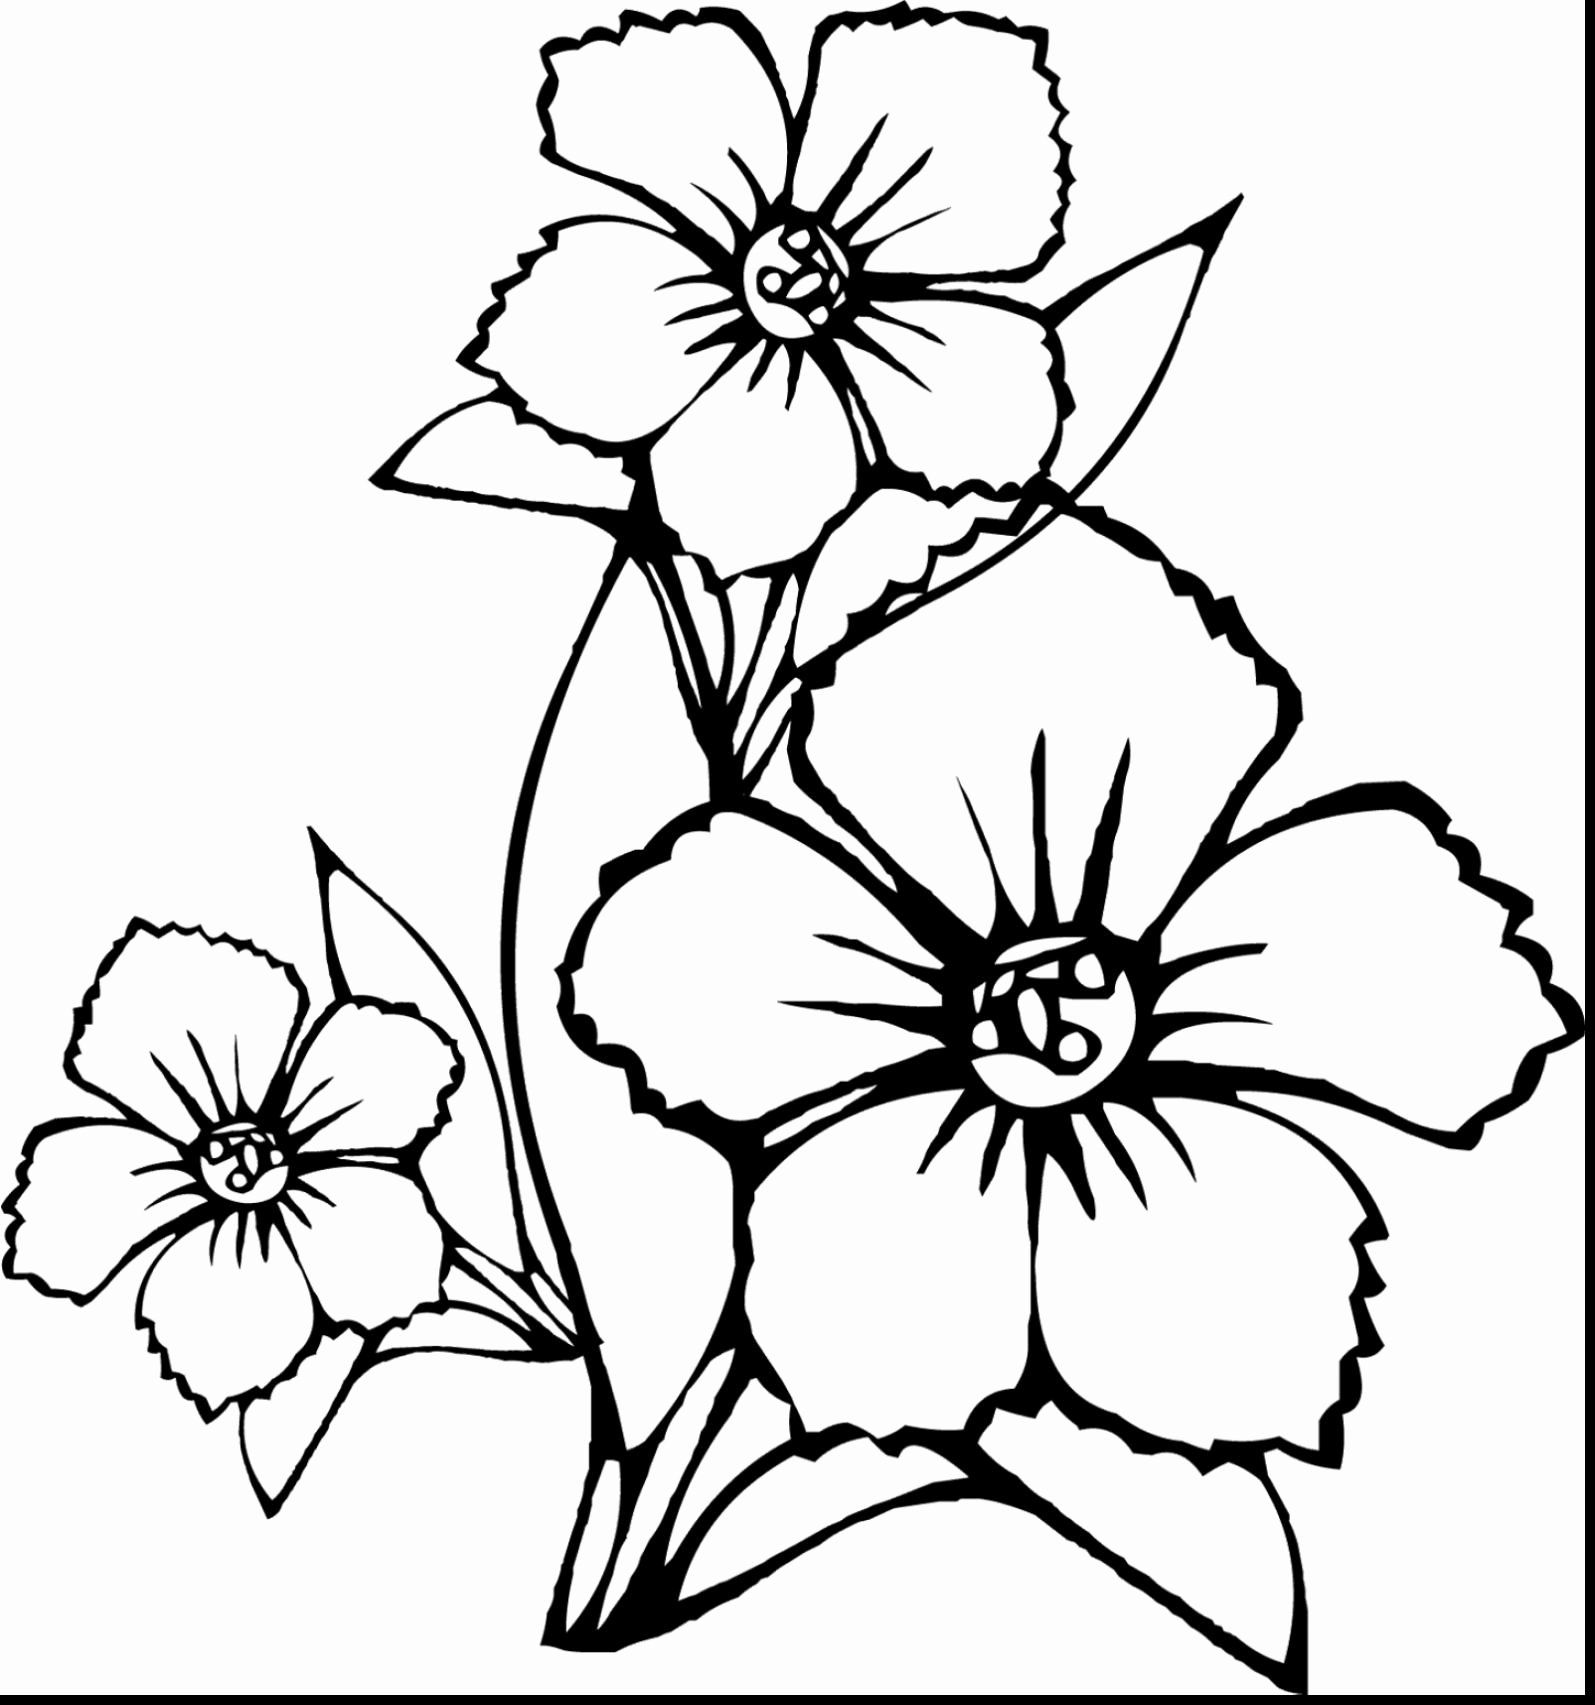 State Flower Coloring Pages New Coloring Pages Birds And Flowers